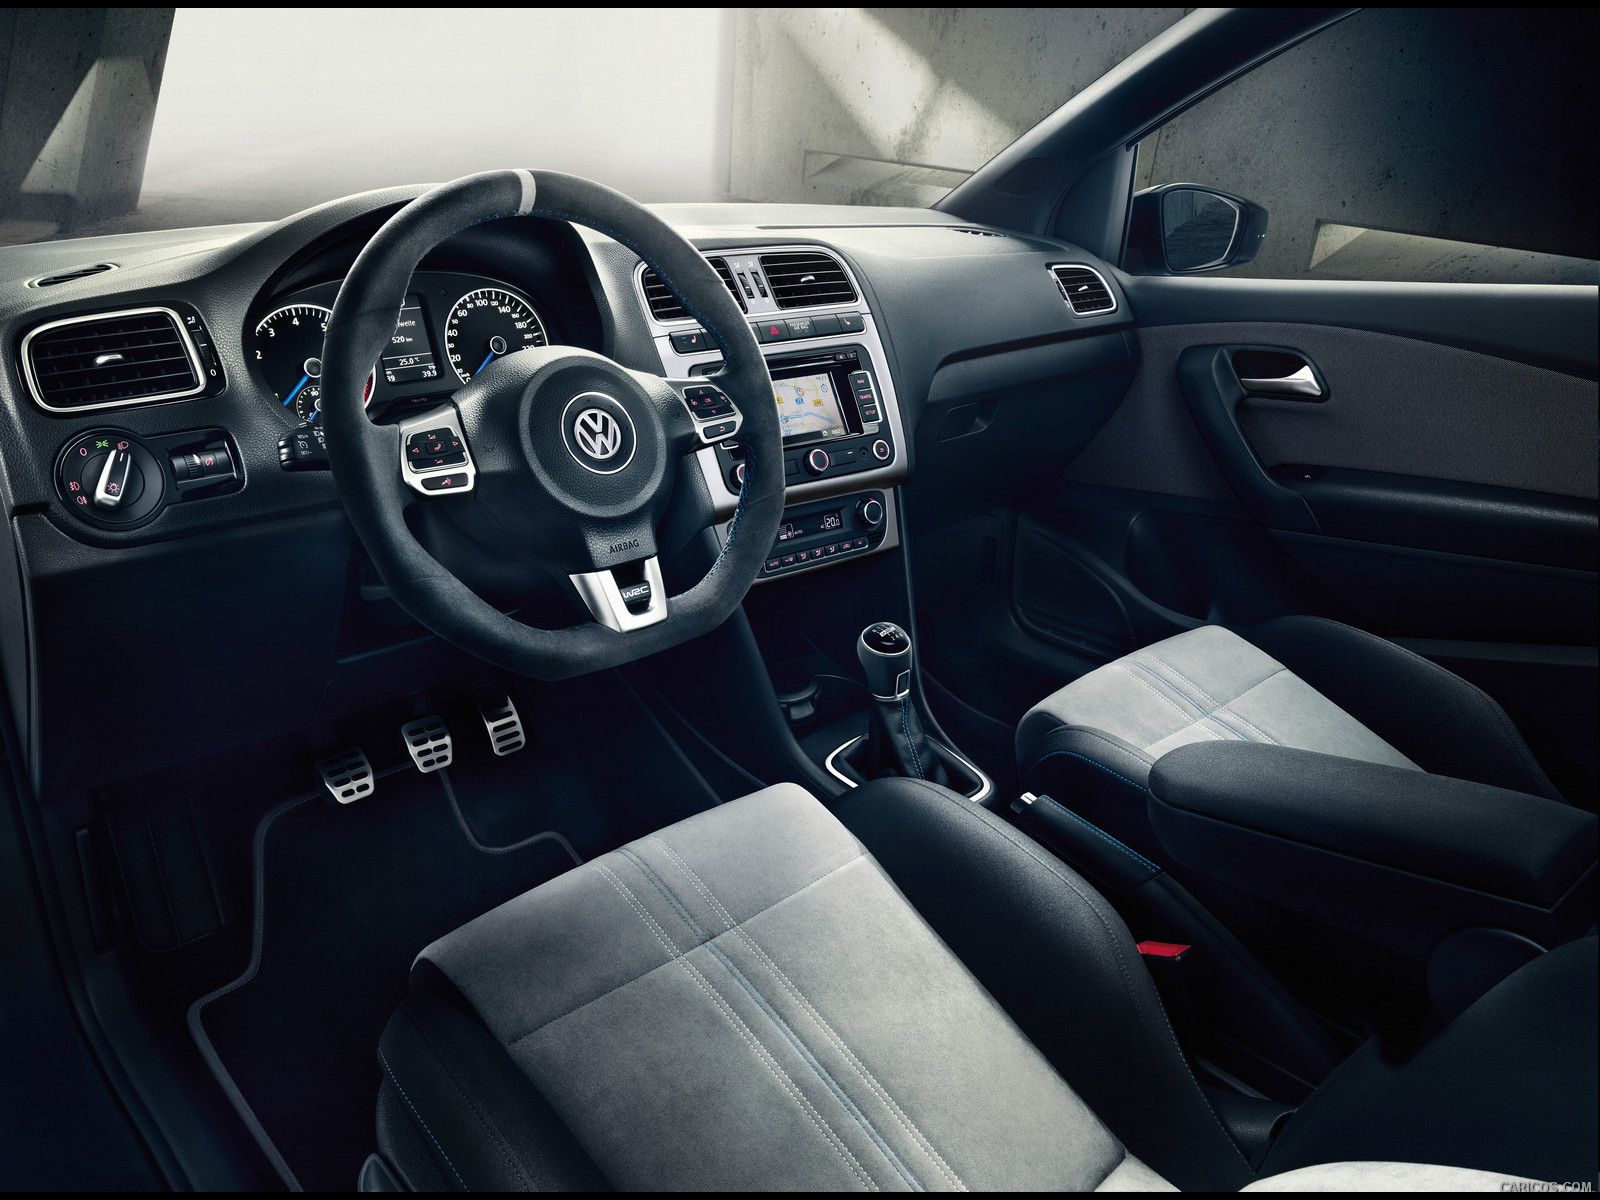 Volkswagen Interior Wallpaper